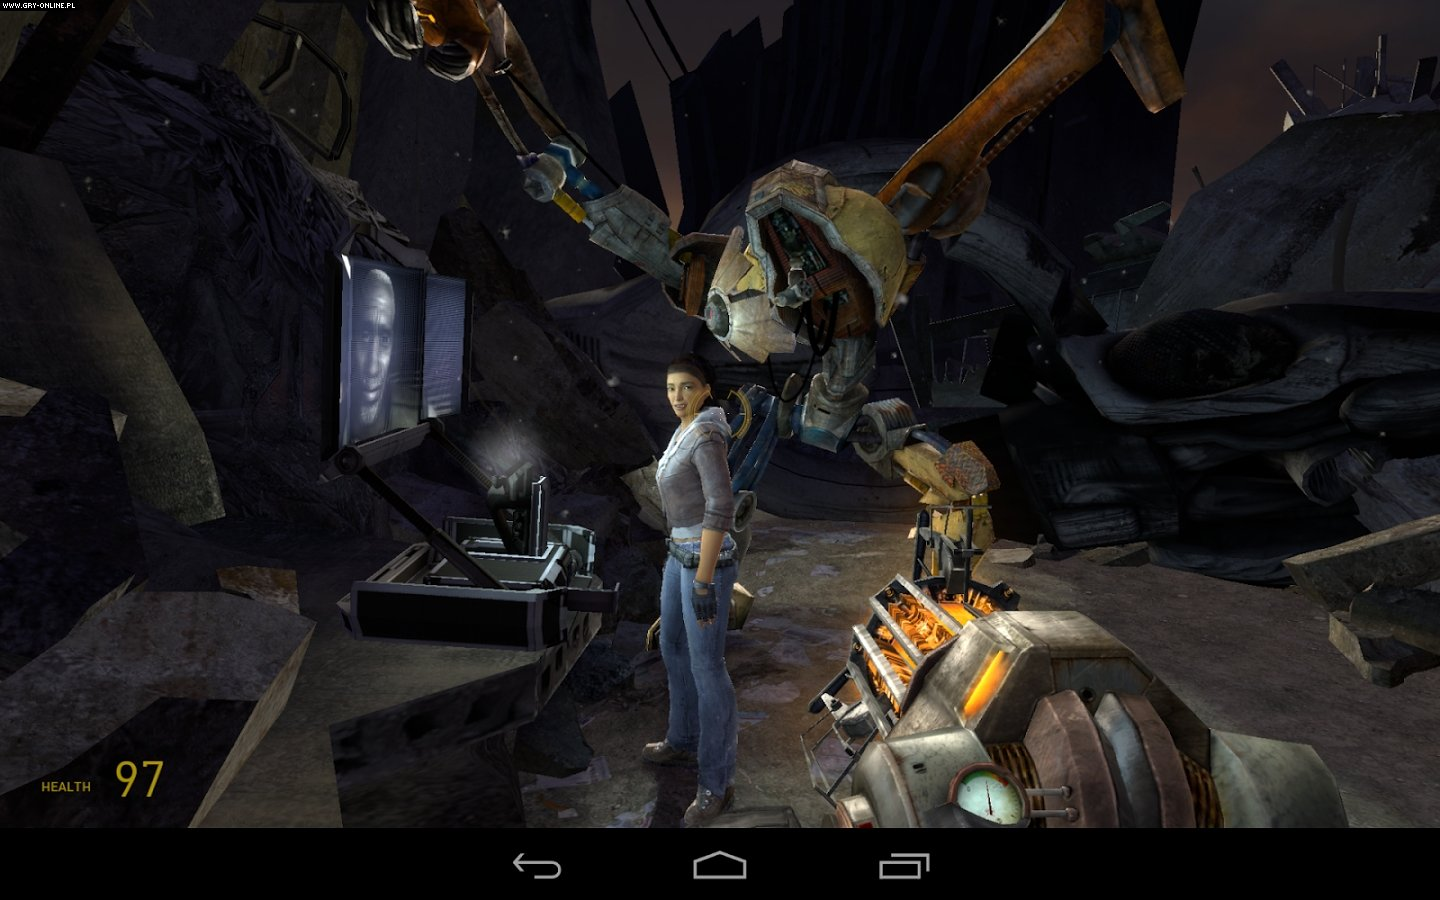 Half-Life 2: Episode One AND Gry Screen 1/33, Valve Software, Electronic Arts Inc.